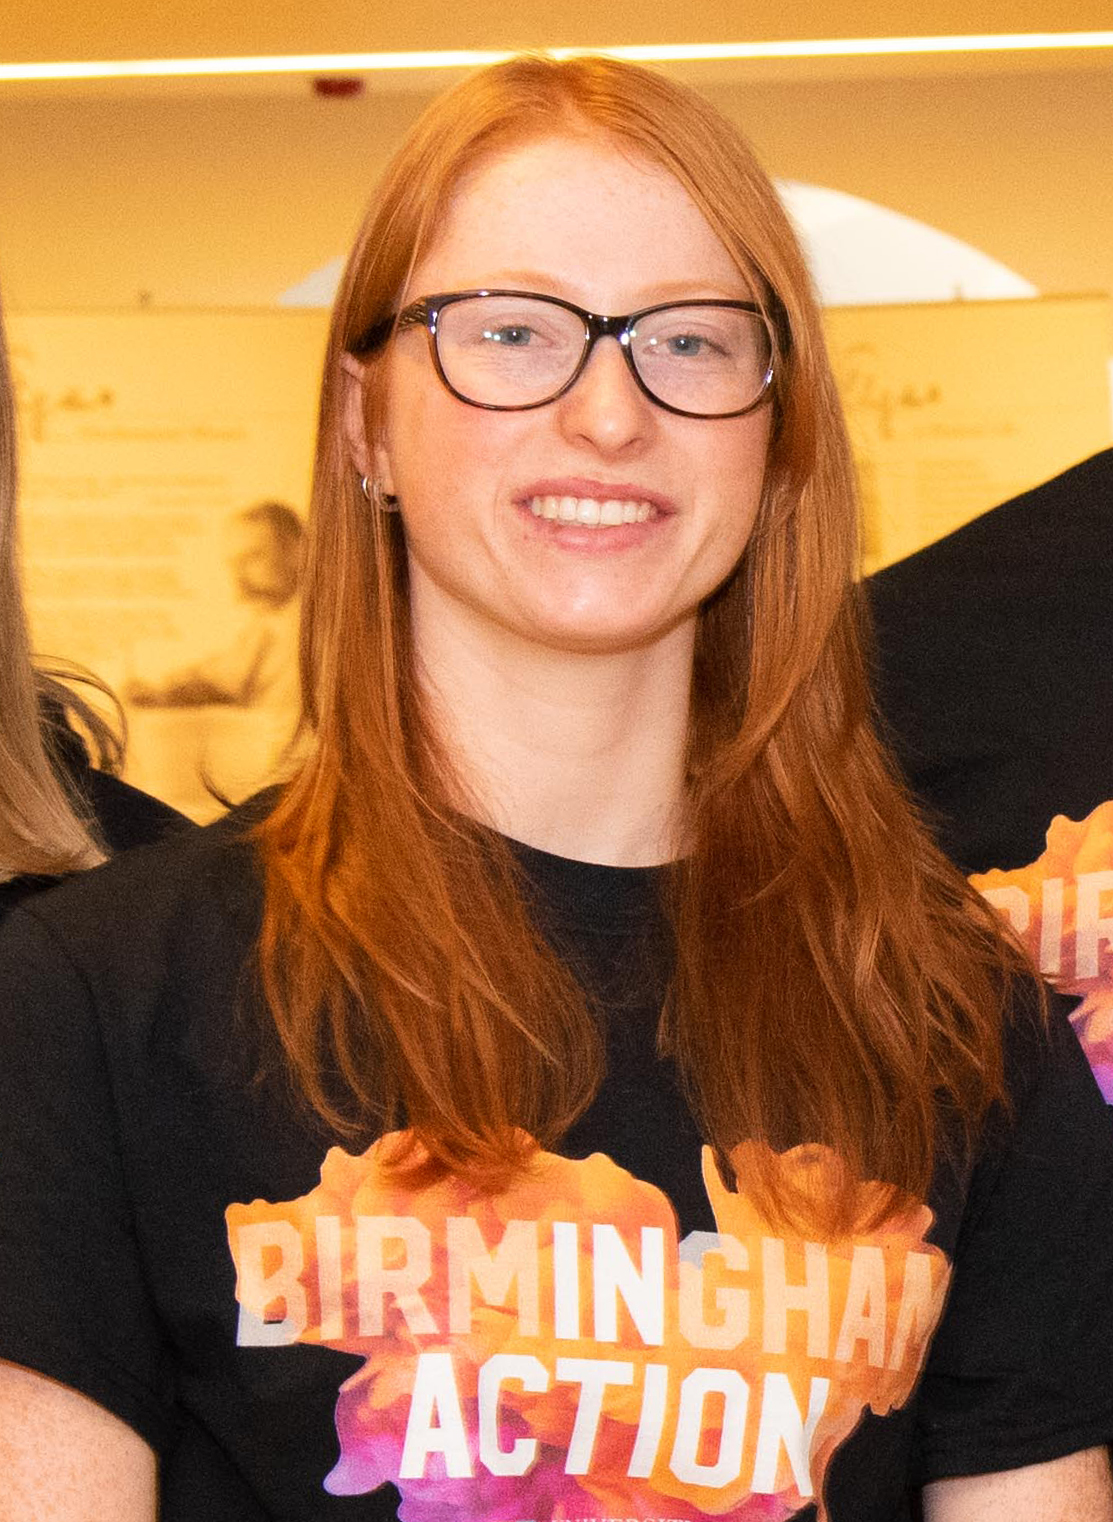 Female student with glasses wearing black and orange t-shirt that says 'Birmingham In Action'